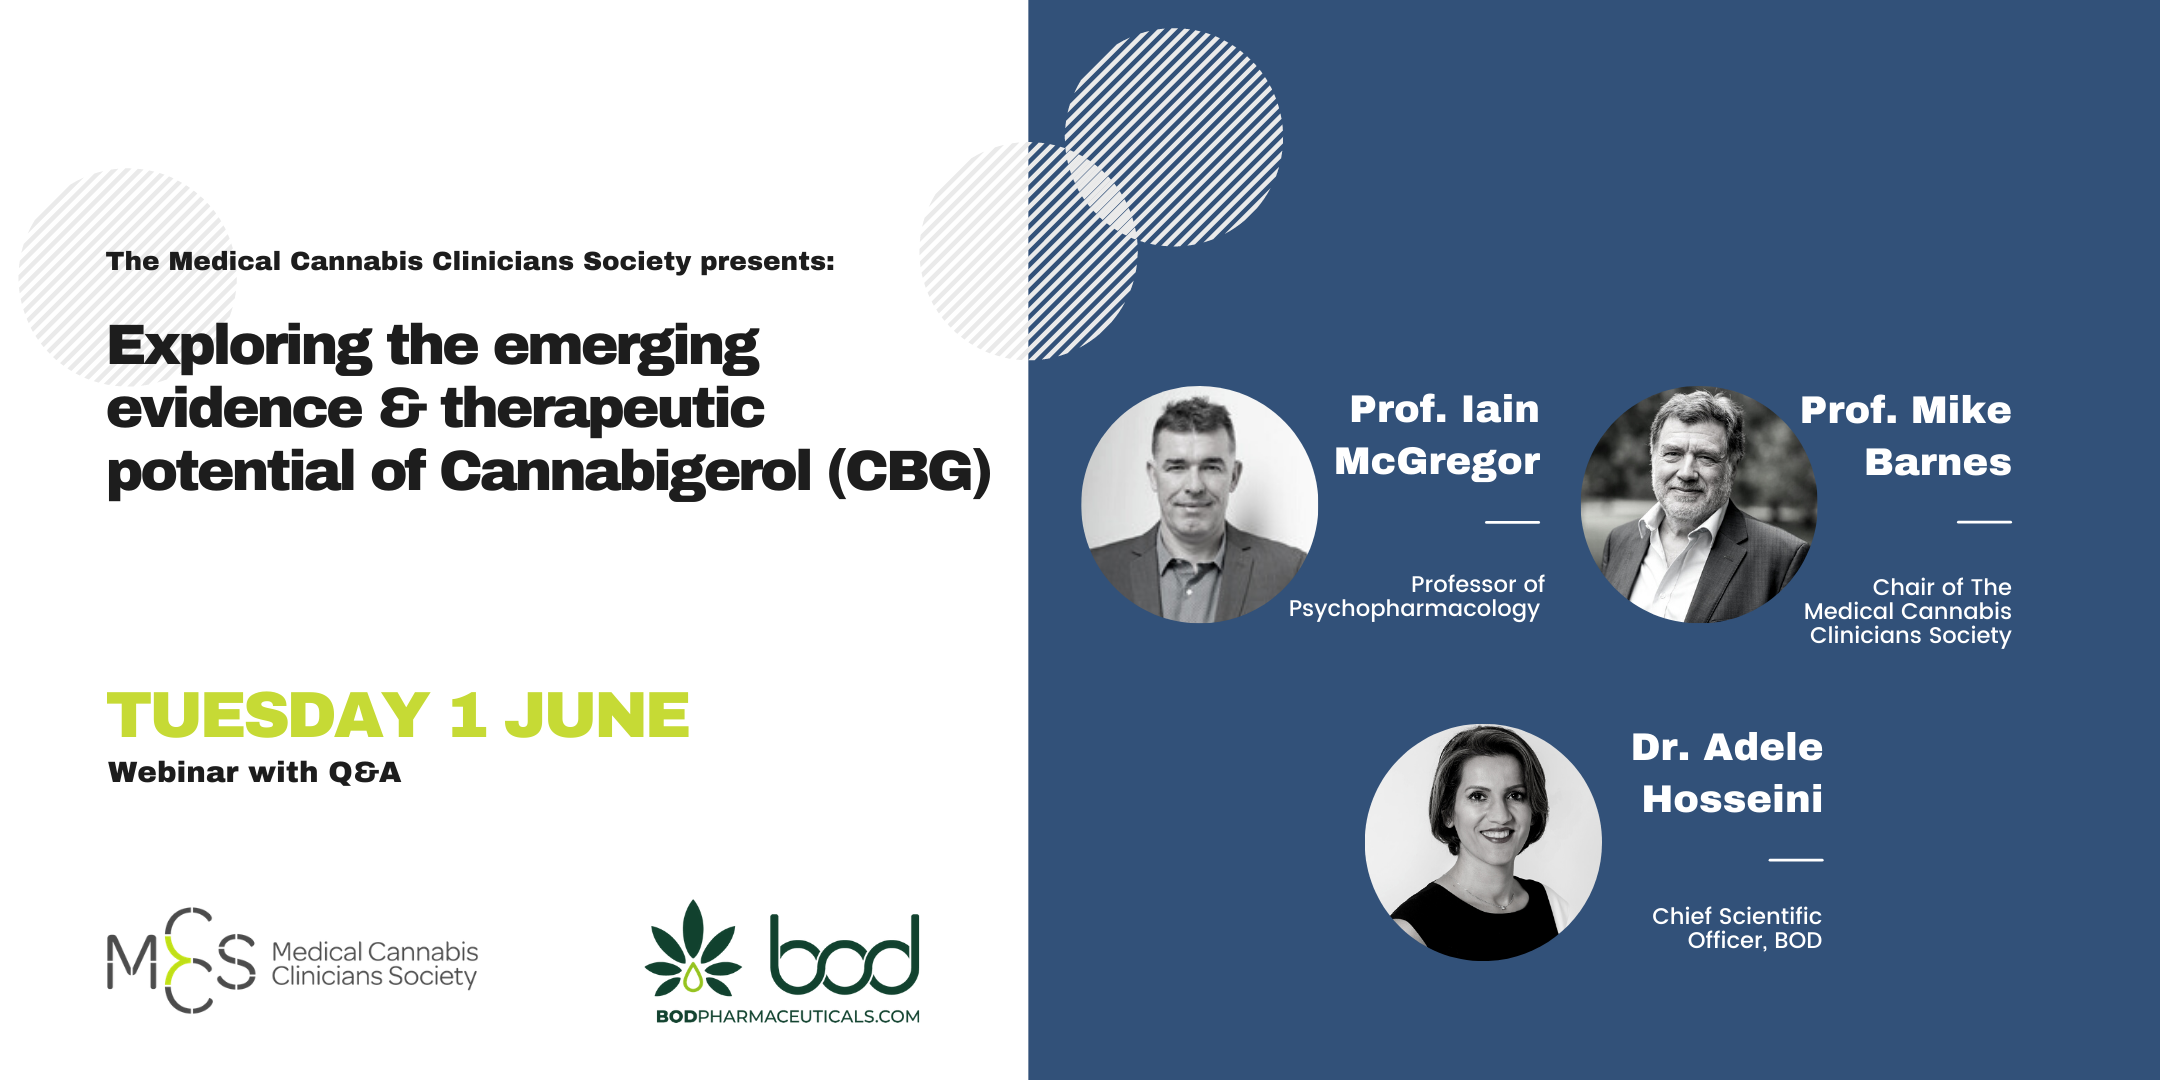 Exploring the emerging evidence & therapeutic potential of Cannabigerol (CBG)